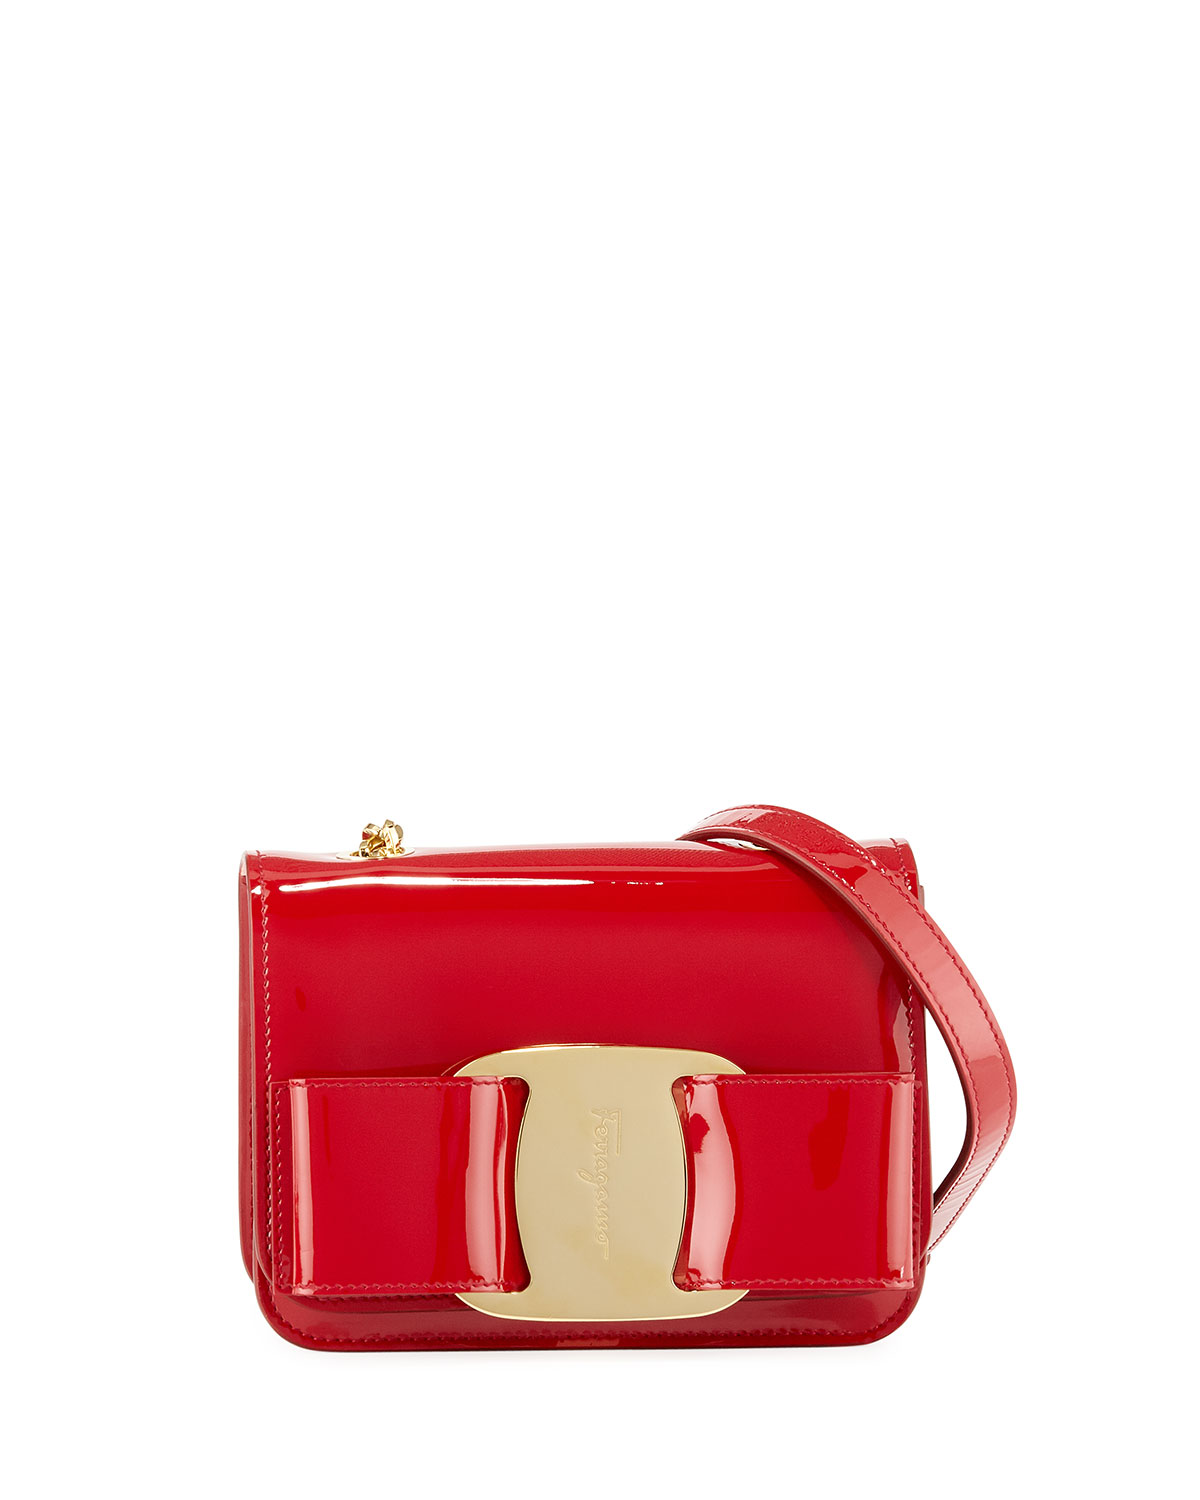 afb0038afdf3 Salvatore Ferragamo Vara Rainbow Patent Shoulder Bag